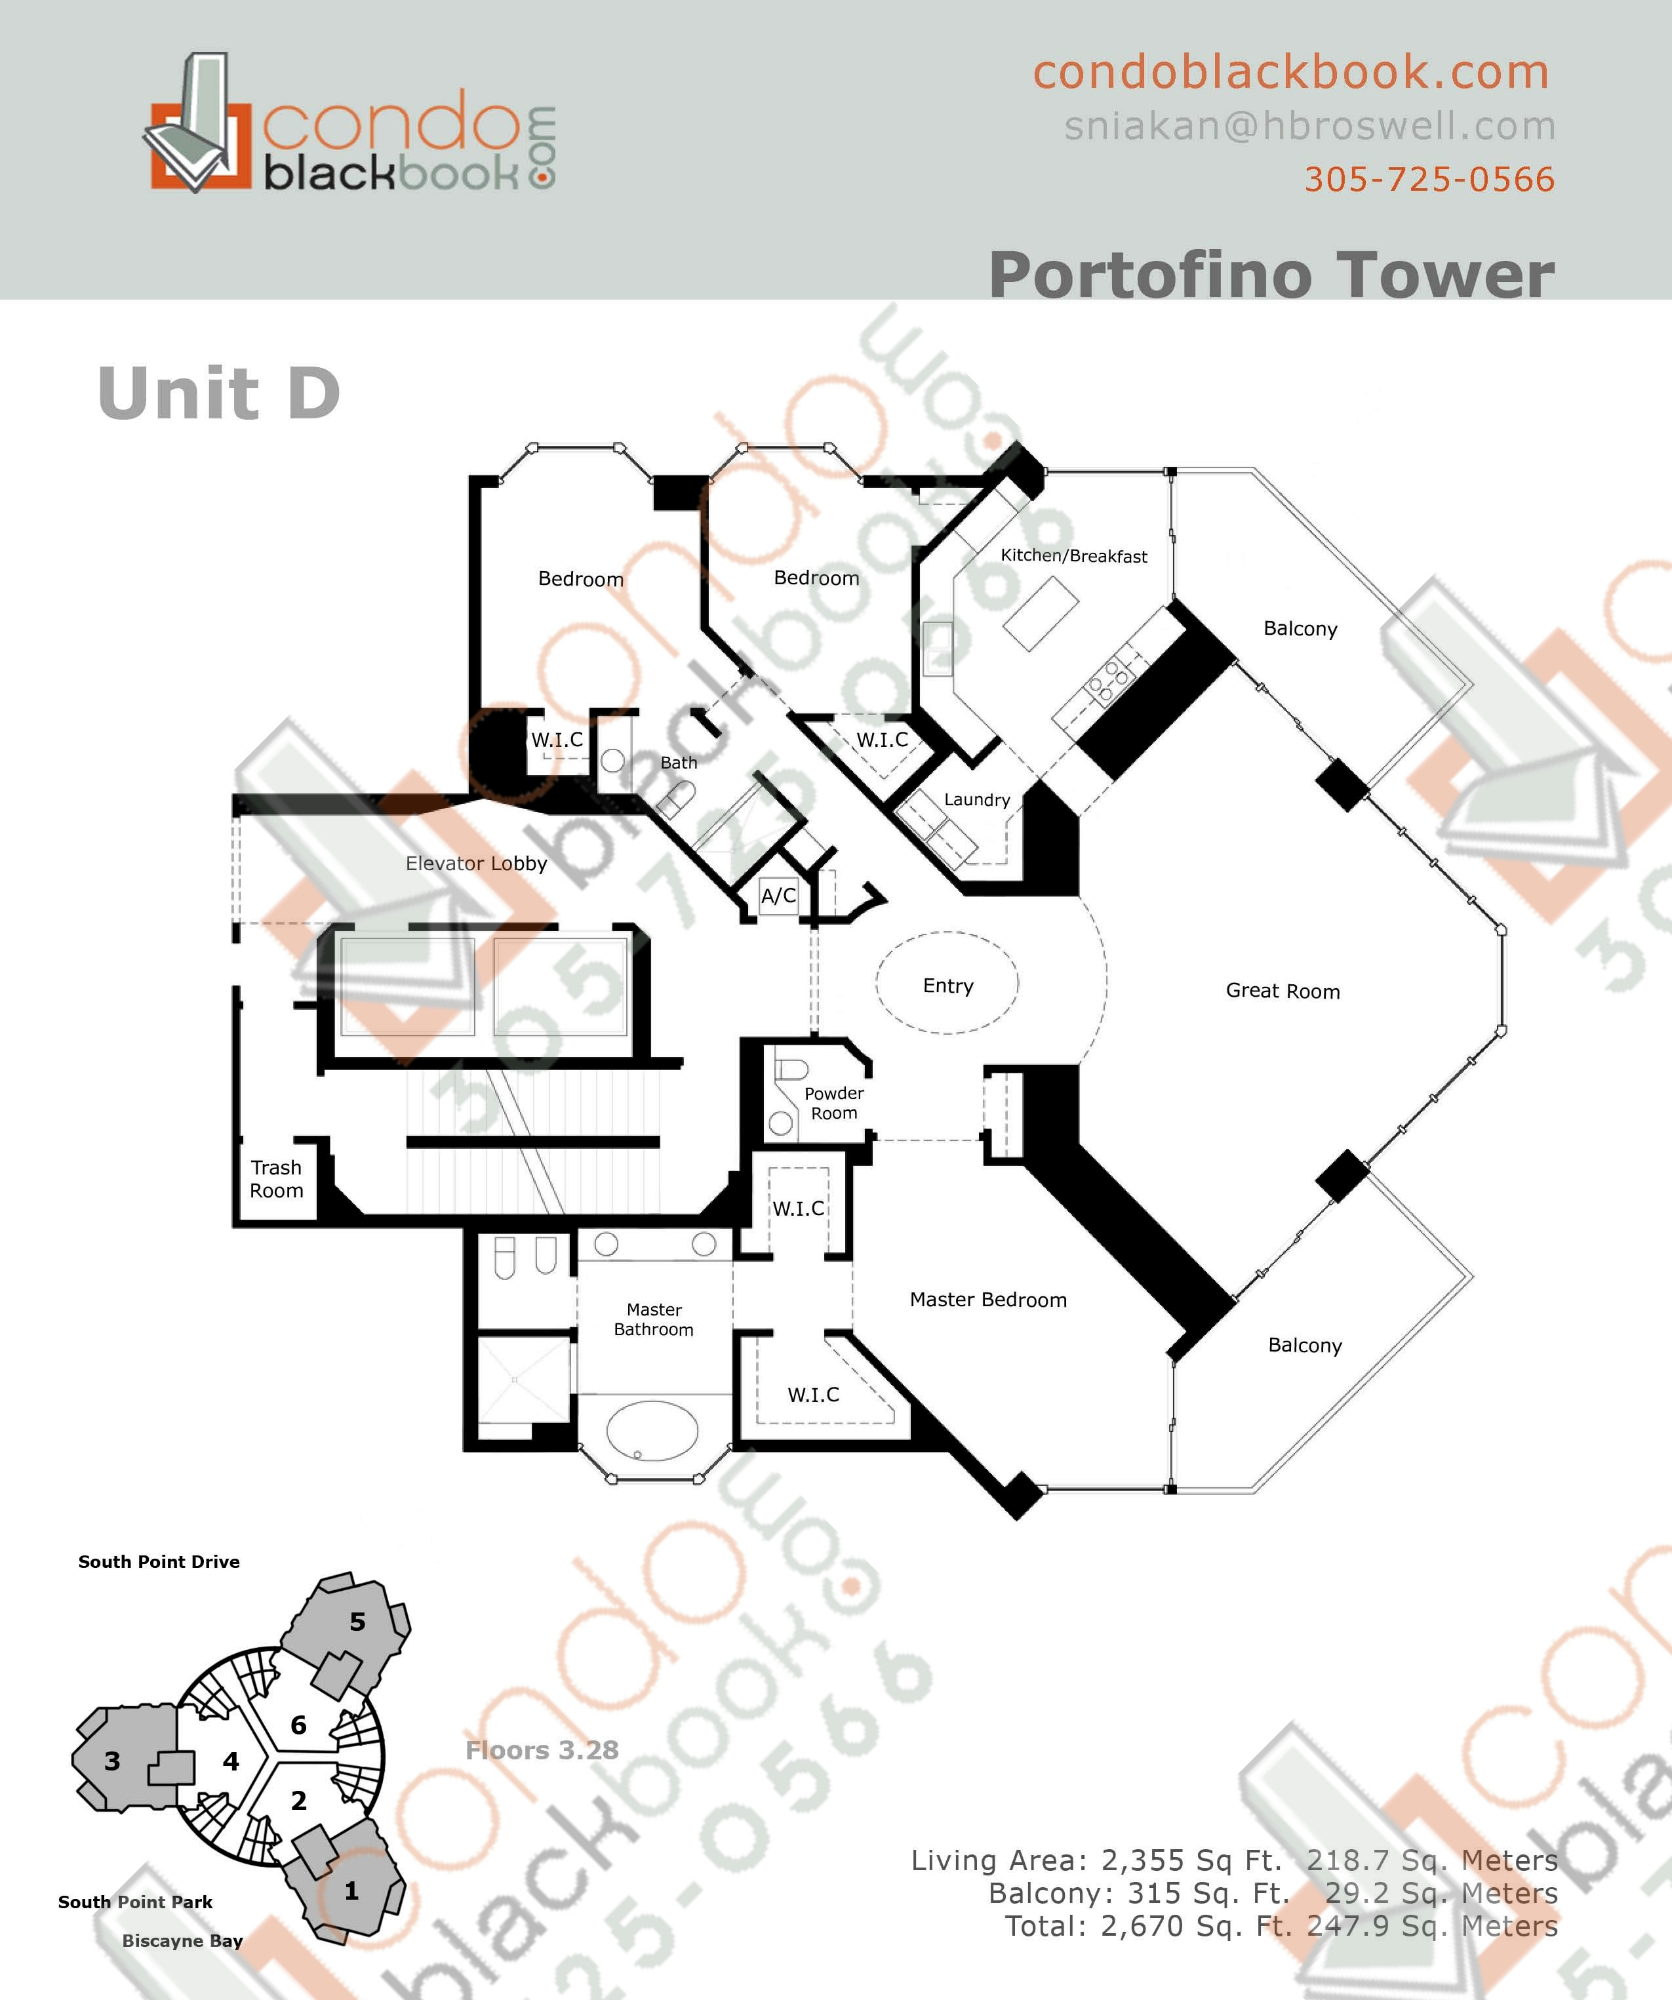 Floor plan for Portofino Tower South Beach Miami Beach, model D, line 05, 3/2.5 bedrooms, 2340 sq ft